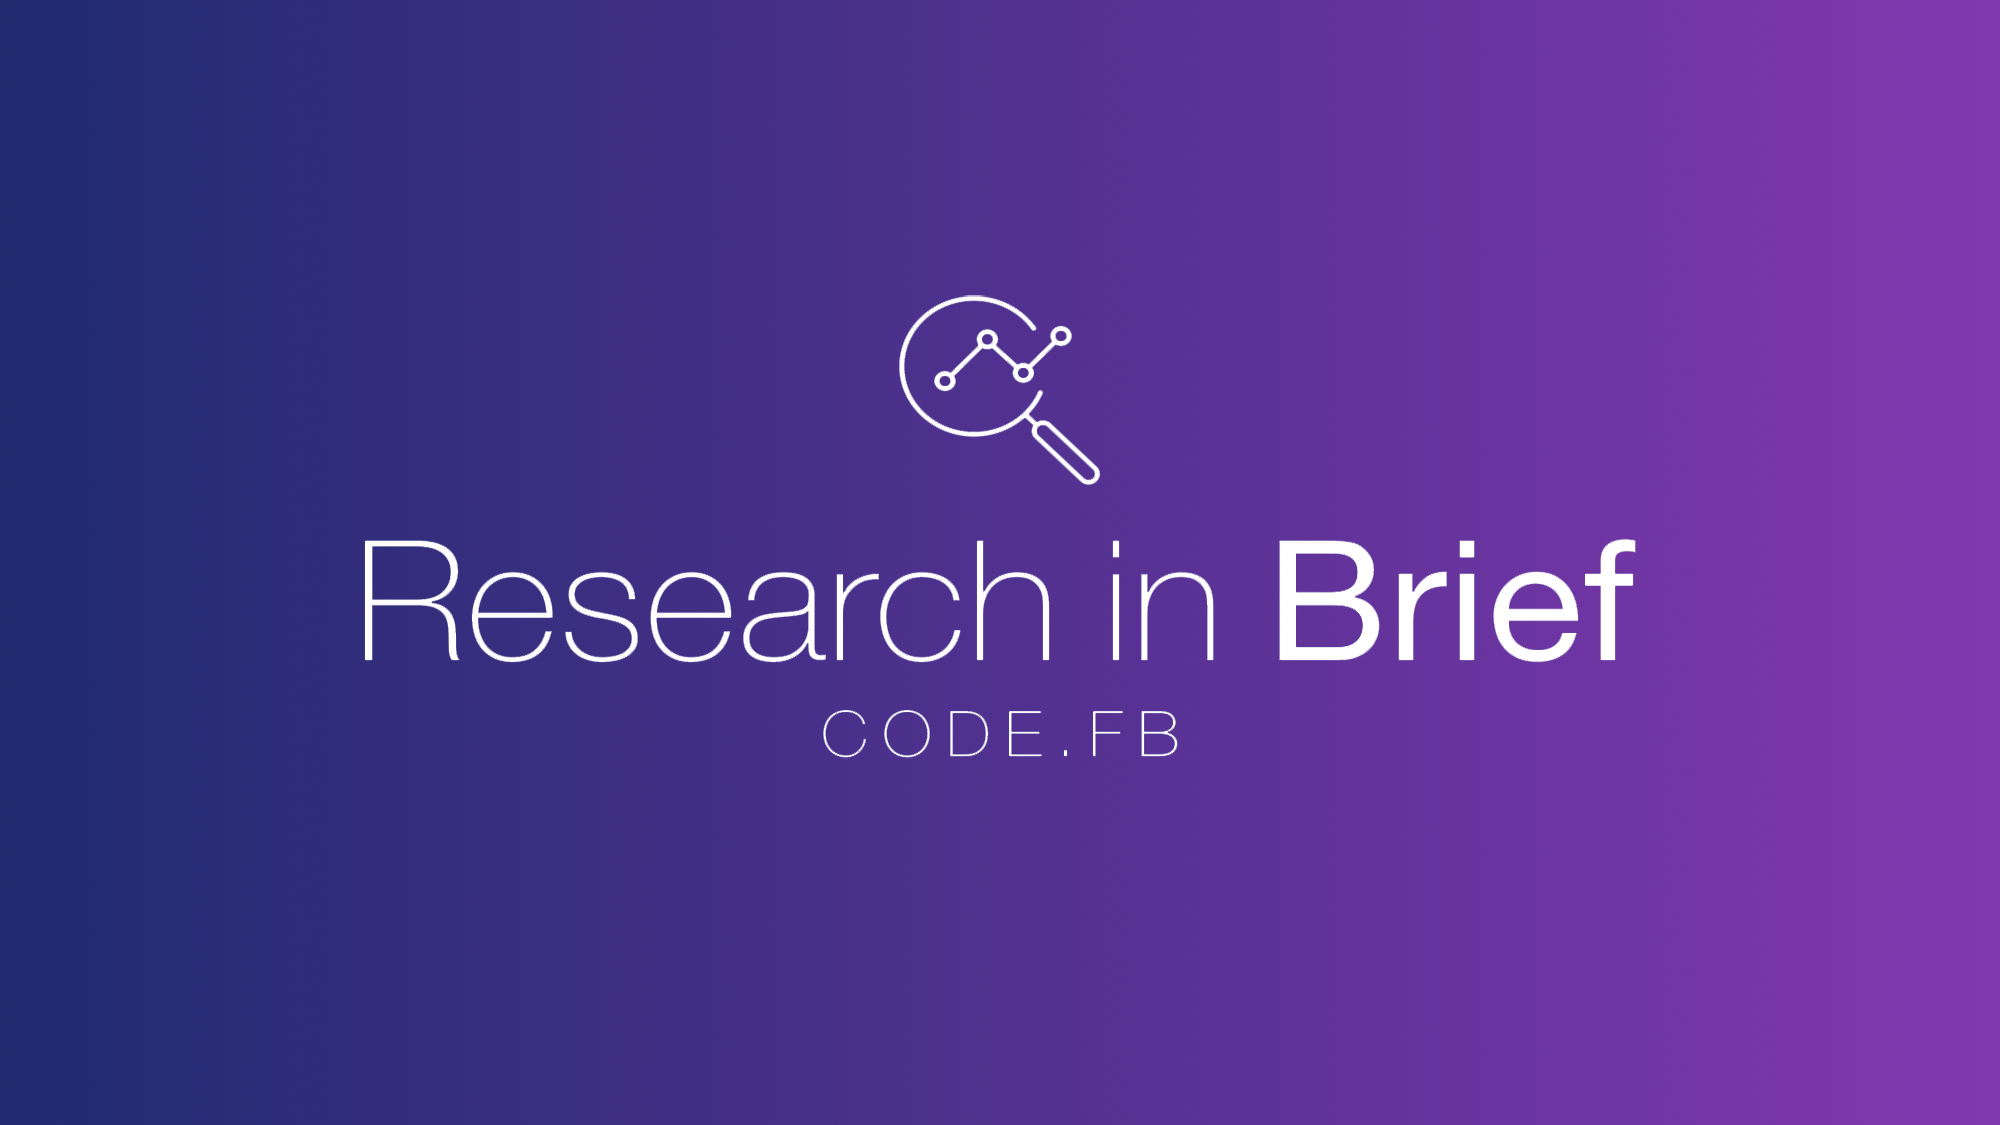 Research in Brief: Neural Egg Separation: Training ML systems to extract audio and video from noisy, cluttered environments on Code.fb.com, Facebook's Engineering blog